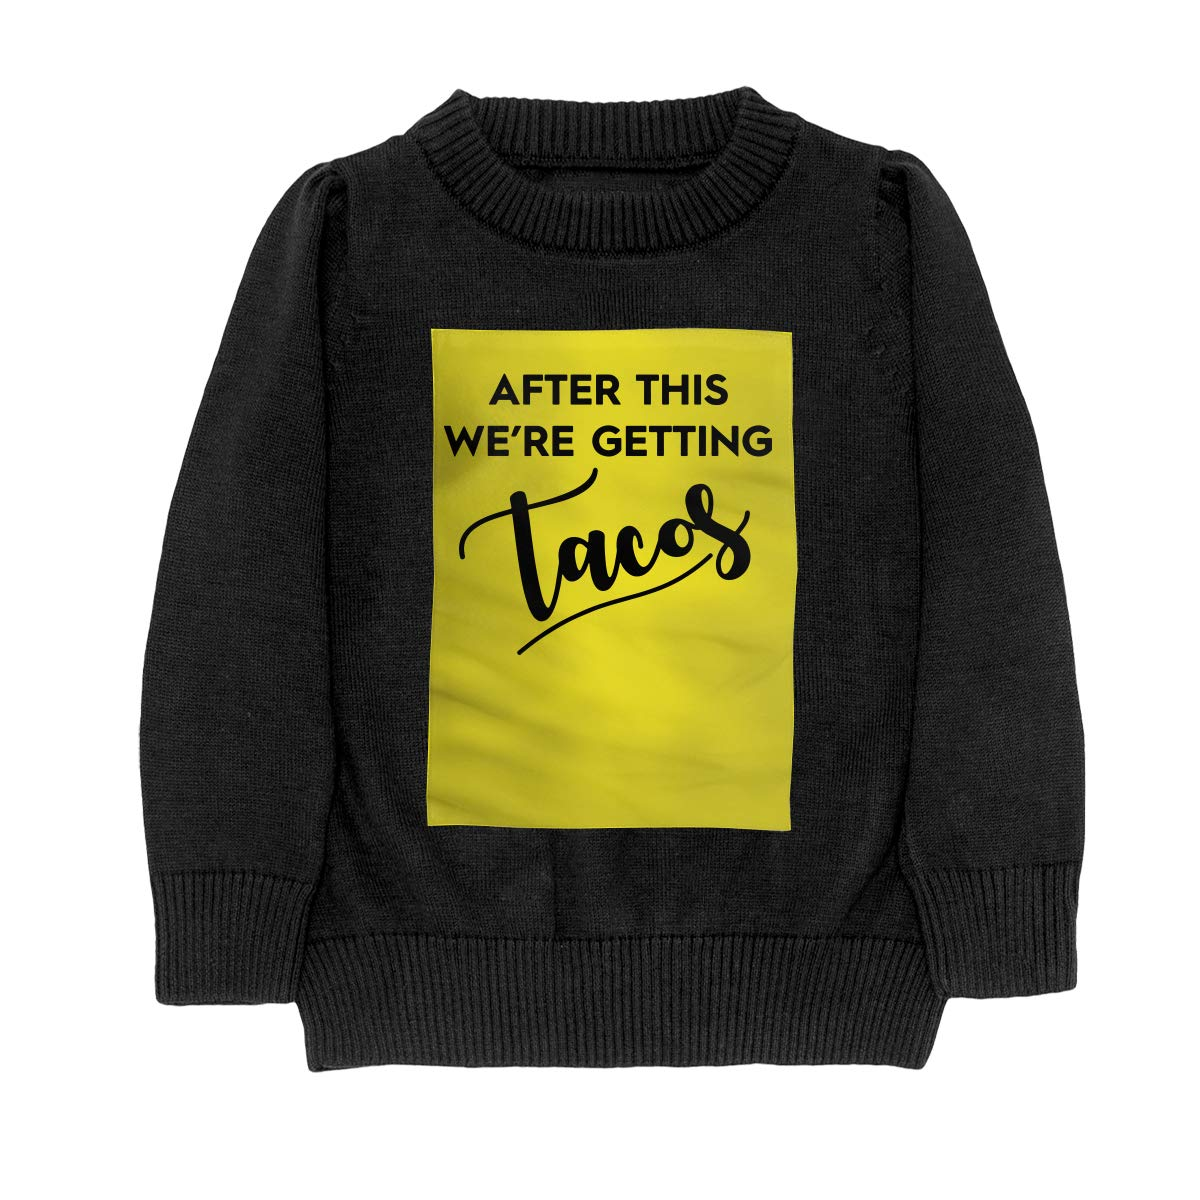 WWTBBJ-B After This Were Getting Tacos Style Teenager Boys Girls Unisex Sweater Keep Warm